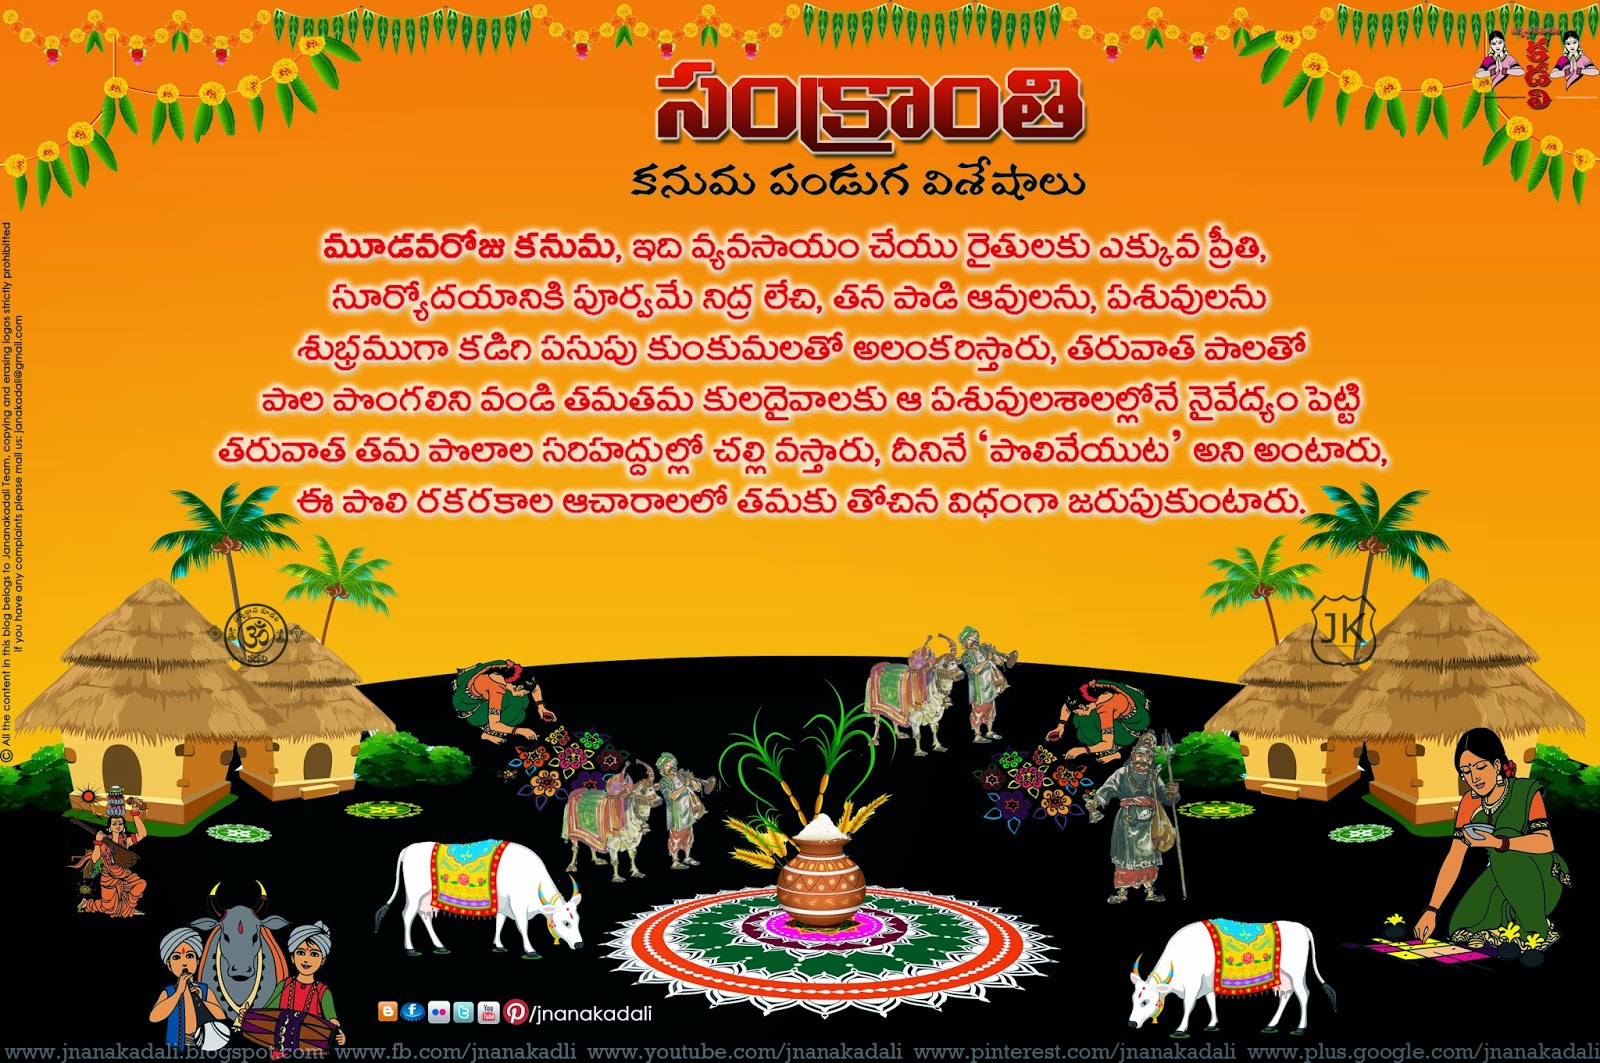 Here is a WhatsApp Pongal Magical Greetings in Telugu Language,Nice Telugu 2015 Sankranti Greetings for WhatsApp. Nice WhatsApp Quotes and Greetings for WhatsApp. Beautiful WhatsApp Pongal Quotes and Greetings in Telugu Language. Pongal Magical Images,Happy Sankranti Telugu WhatsApp Magic Greetings.Telugu Sankranti Quotations and Greetings wishes.Here is a Nice Sankranti Telugu Quotations with Nice Images. Makara Sankranti Telugu Quotes Images. Quotes about Pongal in Telugu Language. Telugu Pongal Quotes Pictures. awesome Telugu Quotations and Telugu Quotations Images. Nice Telugu Quotes Telugu Sankranti Festival Greeting Cards.Telugu 2015 Pongal wishes and Greetings with Quotes in Telugu Language. Telugu Latest 2015 Pongal Messages and Quotations. pongal Telugu Quotations. Sankranthi Telugu Quotes Images. Pongal Telugu Quotes Online. Nice Telugu Pongal Quotes Pictures.Happy Bhogi and Pongal Telugu Quotes and Greetings,Nice Bhogi Telugu Quotations and Pongal Greetings 2015. Cool 2015 Bhogi Quotes Images. Bhogi Quotations Images. Bhogi Telugu Pictures Messages. 2015 Sankranthi Bhogi Images. Happy Bhogi Telugu Quotes Images. Nice Bhogi Festival Celebrations and Quotations Images. Happy Bhogi 2015 Images,Telugu Sankranthi HD Quotes Wallpapers,Sankranthi Telugu Images, Pongal Quotes in Telugu With Pot, Telugu Sankranthi Greetings Free, Telugu Sankranthi  Quotations, Telugu Sankranthi Receps, Telugu Sankranthi HD Wallpapers, Pongal HD Background Wallpapers,Telugu Pongal HD wallpapers, Telugu Pongal Greetings in Telugu Font, Telugu Pongal Images, Telugu Pongal SMS,Kanuma Greetings in Telugu | Telugu Kanuma Festival Quotes,Bhogi Quotes in Telugu | Bhogi Telugu Wallpapers,Bhogi Greetings in Telugu, Telugu Bhogi Festival Date Quotes, Telugu Bhogi Festival Quotes images, Telugu Pongal Bhogi Images, Telugu bhogi Messages, Telugu Bhogi SMS, Telugu Bhogi Images,Telugu Festival wishes greetings for Pongal Sankranthi Kanuma greetings hd images and nice wall papers in telugu,Bhogi Pongal Wishes Greetings images wallpapers photoes in telugu,Beautiful Telugu Festival wishes for Pongal Sankranthi Kanuma greetings hd images and Beautiful wall papers in telugu,Awesome Telugu Festival Greetings for Pongal Sankranthi Kanuma wishes hd images and Beautiful wall papers in telugu,Nice Telugu Greetings for Pongal Sankranthi Kanuma wishes hd images and Beautiful wall papers in telugu,Best Telugu wishes for Pongal Sankranthi Kanuma greetings hd images and Beautiful wall papers in telugu,Pongal Sankranthi Kanuma wishes greetings hd images and Beautiful wall papers in telugu,Pongal Sankranthi Kanuma wishes greetings hd images and Beautiful wall papers,Pongal Sankranthi Kanuma wishes greetings hd images and nice wall papers,Best Pongal,makara Sankranti,Bhogi,kanuma,mukkanuma telugu quotes wall papers images SMS WhatsApp messages poems shayari kavithalu in Telugu English Hindi Tamil kannada.Pongal,makara Sankranti,Bhogi,kanuma,mukkanuma greetings telugu quotes Best Pongal,makara Sankranti,Bhogi,kanuma,mukkanuma Quotes Greetings in Telugu Best Pongal,makara Sankranti,Bhogi,kanuma,mukkanuma Quotes Greetings in Telugu,Pongal,makara Sankranti,Bhogi,kanuma,mukkanuma Quotes in telugu, Pongal,makara Sankranti,Bhogi,kanuma,mukkanuma Hd Wallpapers images pictures photos for Pongal,makara Sankranti,Bhogi,kanuma,mukkanuma,Pongal,makara Sankranti,Bhogi,kanuma,mukkanuma wallpapers,Best Pongal,makara Sankranti,Bhogi,kanuma,mukkanuma Quotes greetings wallpapers images pictures poems shayari kavitalu in hindi telugu English tamil kannada bengali and marathi. Happy Pongal,makara Sankranti,Bhogi,kanuma,mukkanuma Quotes Greetings wallpapers in hindi Here is Happy Pongal,makara Sankranti,Bhogi,kanuma,mukkanuma Quotes Greetings wallpapers in hindi, Best Pongal,makara Sankranti,Bhogi,kanuma,mukkanuma Quotes greetings wallpapers images pictures photos messages poems information sheyari kavitalu in telugu English hindi tamil kannada, Hindu god wallpapers New Year2016 images pictures wallpapers for Pongal,makara Sankranti,Bhogi,kanuma,mukkanuma.Best New Pongal,makara Sankranti,Bhogi,kanuma,mukkanuma Quotes Wallpapers greetings wishes messages SMS Here is Best Pongal,makara Sankranti,Bhogi,kanuma,mukkanuma Quotes Wallpapers greetings wishes messages SMS in Hindi Telugu English Tamil Kannada Bengali marathi, Best Pongal,makara Sankranti,Bhogi,kanuma,mukkanuma Greetings Wishes Quotes messages poems information in telugu English hindi kannada tamil, Best Pongal,makara Sankranti,Bhogi,kanuma,mukkanuma wallpapers Pongal,makara Sankranti,Bhogi,kanuma,mukkanuma pictures photos images wallapapers greetings. Happy Pongal,makara Sankranti,Bhogi,kanuma,mukkanuma Telugu Quotes greetings images wallpapers Happy Pongal,makara Sankranti,Bhogi,kanuma,mukkanuma Telugu Quotes greetings images wallpapers pictures photos in telugu English hindi tamil kannada Malayalam Marathi bengali, Best Pongal,makara Sankranti,Bhogi,kanuma,mukkanuma Telugu Quotes Greetings images wallpapers, Happy Pongal,makara Sankranti,Bhogi,kanuma,mukkanuma Quotes greetings wishes images wallpapers in telugu English hindi kannada tamil Bengali marthi, Best New Pongal,makara Sankranti,Bhogi,kanuma,mukkanuma Quotes greetings wishes images wallpapers in telugu English hindi kannada tamil Bengali marthi. New Pongal,makara Sankranti,Bhogi,kanuma,mukkanuma Telugu Quotes Greetings images wallpapers Best Pongal,makara Sankranti,Bhogi,kanuma,mukkanuma Telugu Quotes Greetings images wallpapers, Happy Pongal,makara Sankranti,Bhogi,kanuma,mukkanuma Quotes greetings wishes images wallpapers in telugu English hindi kannada tamil Bengali marthi, Best New Pongal,makara Sankranti,Bhogi,kanuma,mukkanuma Quotes greetings wishes images wallpapers in telugu English hindi kannada tamil Bengali marthi. New Pongal,makara Sankranti,Bhogi,kanuma,mukkanuma Telugu Quotes Wishes Messages Best Pongal,makara Sankranti,Bhogi,kanuma,mukkanuma 2016 Images HD Wallpapers,Here is a Telugu New Pongal,makara Sankranti,Bhogi,kanuma,mukkanuma 2016 Greetings and Wishes messages, Top Telugu language Wishes of Pongal,makara Sankranti,Bhogi,kanuma,mukkanuma meaning in Telugu Language, Top Telugu New Pongal,makara Sankranti,Bhogi,kanuma,mukkanuma Wallpapers and Images, Cool Telugu language Pongal,makara Sankranti,Bhogi,kanuma,mukkanuma Wishes Cool Greetings Images Inspiring New Pongal,makara Sankranti,Bhogi,kanuma,mukkanuma Wishes and New Pongal,makara Sankranti,Bhogi,kanuma,mukkanuma Messages in Telugu font, Happy New Year2016 Family Wishes and Celebrations Images and Greetings .Wish You Happy Pongal,makara Sankranti,Bhogi,kanuma,mukkanuma Telugu quotes and Nice Images, Happy New Pongal,makara Sankranti,Bhogi,kanuma,mukkanuma Quotes greetings wishes images wallpapers in Telugu New Pongal,makara Sankranti,Bhogi,kanuma,mukkanuma Images, New Pongal,makara Sankranti,Bhogi,kanuma,mukkanuma Telugu Quotes greetings images wallpapers pictures photos in in telugu English hindi kannada tamil Bengali marthi, New Pongal,makara Sankranti,Bhogi,kanuma,mukkanuma Quotes greetings wishes images wallpapers in telugu English hindi kannada tamil Bengali marthi. Best New Pongal,makara Sankranti,Bhogi,kanuma,mukkanuma Telugu Quotes Greetings images wallpapers, New Pongal,makara Sankranti,Bhogi,kanuma,mukkanuma SMS Quotes Prayer Poems in Telugu Greetings Images Wallpapers Advance New Year2016 Telugu Wishes Quotes Messages sms images Whatsapp Status Here is a Telugu LanguagePongal,makara Sankranti,Bhogi,kanuma,mukkanuma Telugu Greetings Images Pongal,makara Sankranti,Bhogi,kanuma,mukkanuma Images, New Pongal,makara Sankranti,Bhogi,kanuma,mukkanuma Best Telugu Quotes and Messages, New Year2016  Telugu Images and Best Wallpapers. Telugu Nice New Pongal,makara Sankranti,Bhogi,kanuma,mukkanuma Greetings,Pongal,makara Sankranti,Bhogi,kanuma,mukkanuma Telugu Images, Best Telugu Pongal,makara Sankranti,Bhogi,kanuma,mukkanuma Wallpapers  Images, Top Telugu Quotes and Images for New Year2016, Nice New Year2016 Top Quotations for Friends, Facebbok New Pongal,makara Sankranti,Bhogi,kanuma,mukkanuma Images and Greetings. Happy New Pongal,makara Sankranti,Bhogi,kanuma,mukkanuma 2015 SMS Quotes Prayer Poems in Telugu Greetings Images Wallpapers Here is a Telugu New Pongal,makara Sankranti,Bhogi,kanuma,mukkanuma Sms images, Pongal,makara Sankranti,Bhogi,kanuma,mukkanuma wishes in telugu,what is the meaning of Pongal,makara Sankranti,Bhogi,kanuma,mukkanuma,Pongal,makara Sankranti,Bhogi,kanuma,mukkanuma importance,Pongal,makara Sankranti,Bhogi,kanuma,mukkanuma pooja vidhanam,Pongal,makara Sankranti,Bhogi,kanuma,mukkanuma wishes with telugu quotes, Pongal,makara Sankranti,Bhogi,kanuma,mukkanuma Telugu Songs and Quotes, Best Pongal,makara Sankranti,Bhogi,kanuma,mukkanuma Telugu language Messages, Pongal,makara Sankranti,Bhogi,kanuma,mukkanuma god Images in Telugu language, Pongal,makara Sankranti,Bhogi,kanuma,mukkanuma Telugu quotations and messages, Top Telugu language awesome Inspiring Good lines and Motivated thoughts Pictures, Awesome Telugu New Pongal,makara Sankranti,Bhogi,kanuma,mukkanuma Images, Pongal,makara Sankranti,Bhogi,kanuma,mukkanuma Telugu Poems, Telugu New Pongal,makara Sankranti,Bhogi,kanuma,mukkanuma in Telugu. Top New Year Pongal,makara Sankranti,Bhogi,kanuma,mukkanuma wishes wallpapers in Telugu language Best New Year Pongal,makara Sankranti,Bhogi,kanuma,mukkanuma Quotes Greetings in English, Happy New Year2016 Pongal,makara Sankranti,Bhogi,kanuma,mukkanuma Quotes in English,New Year2016 Hd Wallpapers images pictures photos,Hindu goddess wallpapers,Best New Year2016 Pongal,makara Sankranti,Bhogi,kanuma,mukkanuma Quotes greetings wallpapers images pictures poems shayari kavitalu in English tamil kannada bengali and marathi. Best New Year2016 Pongal,makara Sankranti,Bhogi,kanuma,mukkanuma  Quotes Greetings in Hindi, Happy New Year2016 Pongal,makara Sankranti,Bhogi,kanuma,mukkanuma Quotes in Hindi, New Year2016 Pongal,makara Sankranti,Bhogi,kanuma,mukkanuma Hd Wallpapers images pictures photos for New Year2016 , Hindu goddess wallpapers, Best New Year2016 Quotes greetings wallpapers images pictures poems shayari kavitalu in hindi English tamil kannada bengali and Marathi.Best New Year2016 Pongal,makara Sankranti,Bhogi,kanuma,mukkanuma Quotes Greetings in Hindi,Happy New Year2016 Pongal,makara Sankranti,Bhogi,kanuma,mukkanuma Quotes in Hindi,New Year2016 Pongal,makara Sankranti,Bhogi,kanuma,mukkanuma Hd Wallpapers images pictures photos for New Year2016 , Hindu goddess wallpapers, Best New Year2016 Pongal,makara Sankranti,Bhogi,kanuma,mukkanuma Quotes greetings wallpapers images pictures poems shayari kavitalu in hindi English tamil kannada bengali and Marathi.Best New Year2016 Pongal,makara Sankranti,Bhogi,kanuma,mukkanuma Quotes Greetings in Telugu, Happy New Year2016 Quotes in telugu, New Year2016 Pongal,makara Sankranti,Bhogi,kanuma,mukkanuma Wallpapers images pictures photos New Year2016, Hindu goddess wallpapers, Best New Year2016 Pongal,makara Sankranti,Bhogi,kanuma,mukkanuma Quotes greetings wallpapers images pictures poems shayari kavitalu in hindi telugu English tamil kannada bengali and Marathi .Best New Year2016 Pongal,makara Sankranti,Bhogi,kanuma,mukkanuma Quotes Greetings in Telugu, Happy New Year2016 Quotes in telugu New Year2016 Hd Wallpapers images pictures photos for New Year2016Pongal,makara Sankranti,Bhogi,kanuma,mukkanuma, Hindu goddess wallpapers for New Year2016, Best New Year2016 Quotes greetings wallpapers images pictures poems shayari kavitalu in hindi telugu English tamil kannada bengali and Marathi . Here is a Happy New Year2016 Pongal,makara Sankranti,Bhogi,kanuma,mukkanuma English greetings , Happy New Year2016 Quotes,Pongal,makara Sankranti,Bhogi,kanuma,mukkanuma SMS, Messages, New Year2016 Greetings for Facebook Status New Year2016 Songs, New Year2016 Pongal,makara Sankranti,Bhogi,kanuma,mukkanuma Shayari, Christmas Wishes, New Year2016 Sayings, Happy New Year2016 Slogans, Facebook New Year2016  Timeline Cover, New Year2016 Importance , New Year2016 HD Wallpaper with Hindu Gods, New Year2016 Greeting Cards In Hindi Language and Hindi font. Here is a Happy New Year2016 English greetings , New Year2016 Pongal,makara Sankranti,Bhogi,kanuma,mukkanuma Quotes in Telugu Langurage and Telugu font, SMS, Messages, New Year2016 Pongal,makara Sankranti,Bhogi,kanuma,mukkanuma Eve Greetings for Facebook Status New Year2016 Pongal,makara Sankranti,Bhogi,kanuma,mukkanuma Songs In HD With New Year Vector Wallpapers , New Year2016 Pongal,makara Sankranti,Bhogi,kanuma,mukkanuma Shayari With Hindi Vector Wallpapers , New Year2016 Pongal,makara Sankranti,Bhogi,kanuma,mukkanuma Wishes In Telugu and Hindi With New Year Png Images, New Year2016 Sayings HD Wallpapers with 1080 p Images , New Year2016 Pongal,makara Sankranti,Bhogi,kanuma,mukkanuma Slogans In HD with Lord Balaji Image , Facebook New Year2016 Timeline Cover, New Year2016  HD Wallpaper with Indian Gods , New Year2016 Greeting Cards with HD Wallpapers . Here is a Happy New Year2016 English greetings,Happy New Year2016 Quotes, SMS, Messages,  New Year2016 Greetings for Facebook Status, New Year2016 Songs for Party , New Year2016 Shayari in Hindi with HD Wallpapers , New Year2016 Wishes In Hindi Telugu English Marathi Bengali Tamil , New Year2016 Pongal,makara Sankranti,Bhogi,kanuma,mukkanuma Sayings with HD 2016 3D font, New Year2016 Slogans With HD Images Quotes, Facebook New Year2016 Timeline Cover, New Year2016 Celebrated Places New Year2016 Pongal,makara Sankranti,Bhogi,kanuma,mukkanuma HD Wallpaper, New Year2016 Pongal,makara Sankranti,Bhogi,kanuma,mukkanuma Eve Greeting Cards.Nice Bhogi Telugu Quotations and Pongal Greetings 2015. Cool 2015 Bhogi Quotes Images. Bhogi Quotations Images. Bhogi Telugu Pictures Messages. 2015 Sankranthi Bhogi Images. Happy Bhogi Telugu Quotes Images. Nice Bhogi Festival Celebrations and Quotations Images. Happy Bhogi 2015 Images